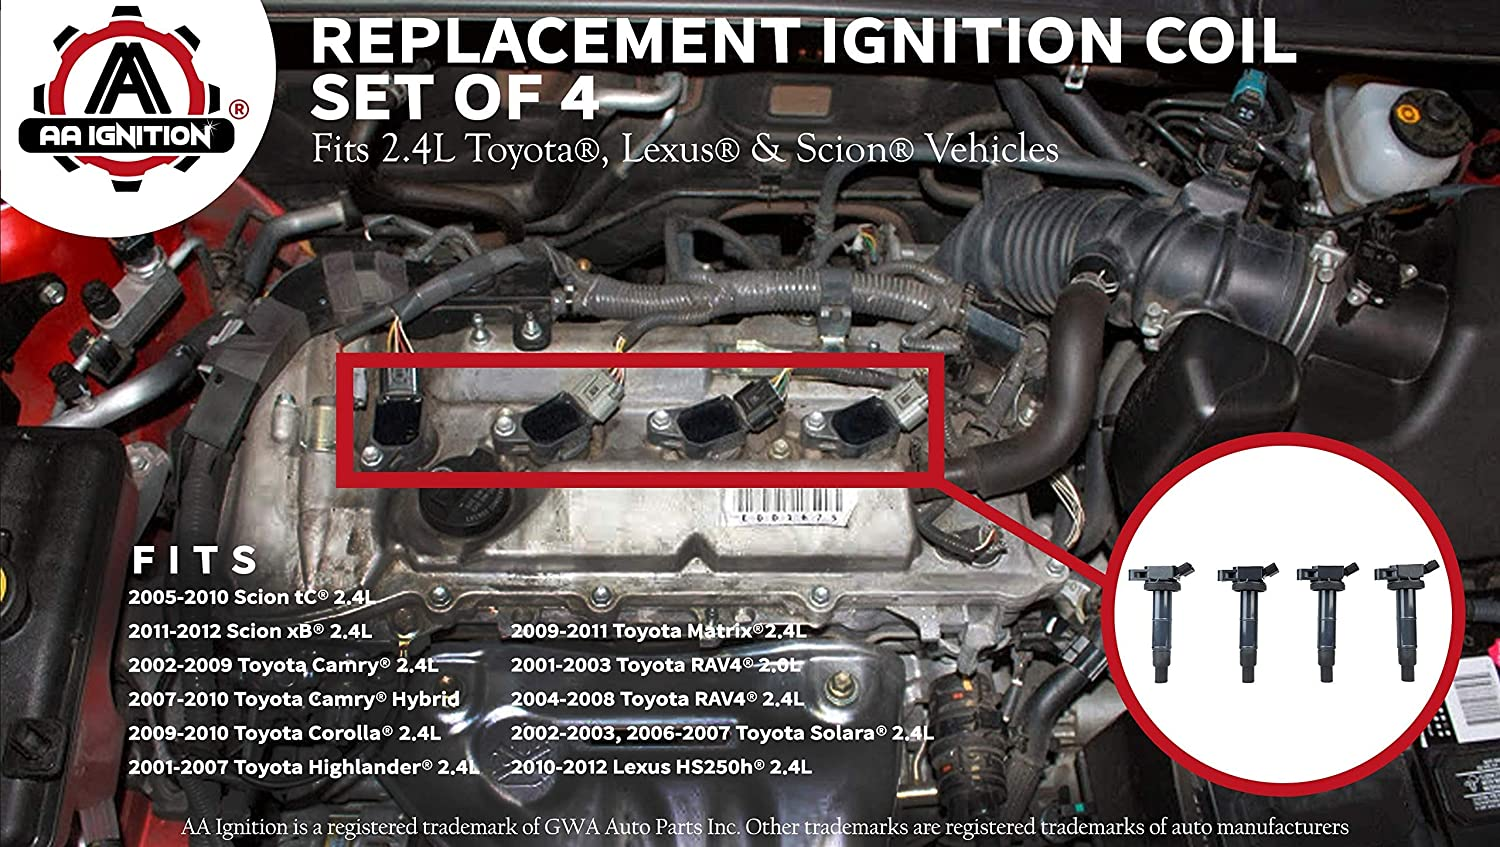 UF333 Years 2001-2012 Ignition Coil Pack Set of 4 Lexus HS250h /& More 2.0L /& 2.4L models- Replaces# 90919-02244 6731307 Renewed Corolla Scion tC C1330 RAV4 xB Fits Toyota Camry Solara